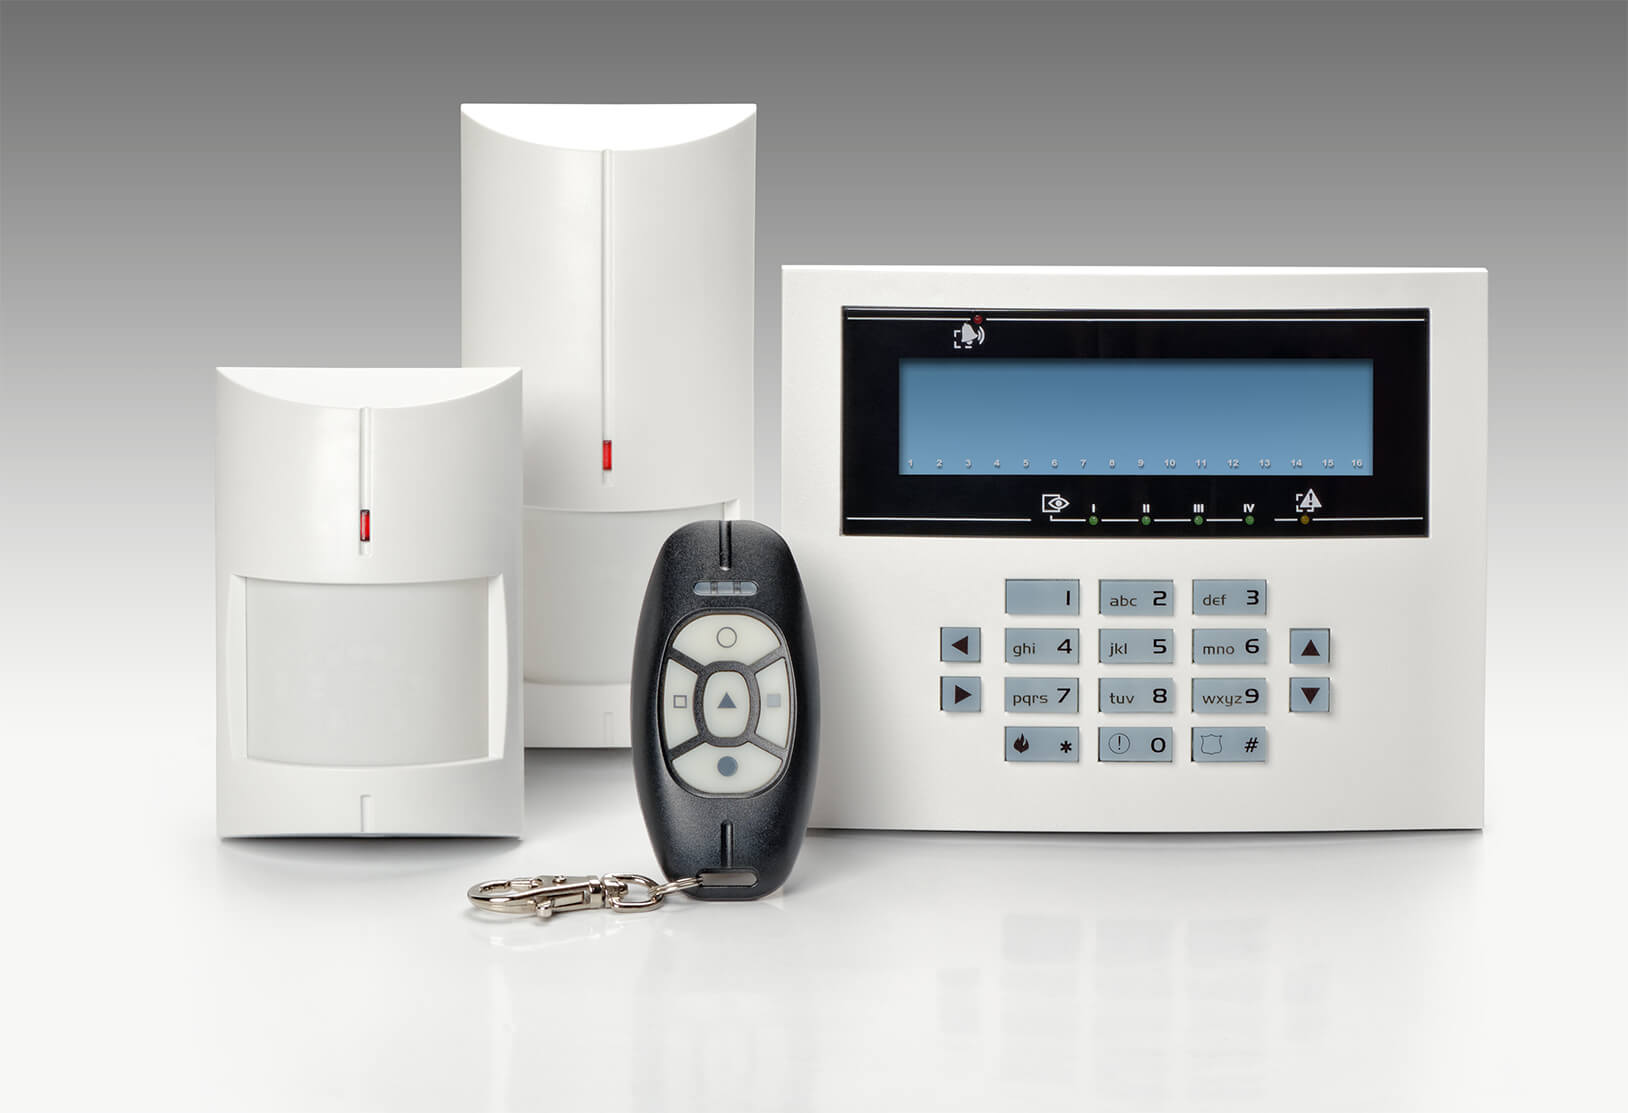 NACOSS Approved Burglar Alarms In Holborn - Residents of Holborn will be pleased to learn that there is a security company nearby that is dedicated to their safety. Companies, shops and homes ..